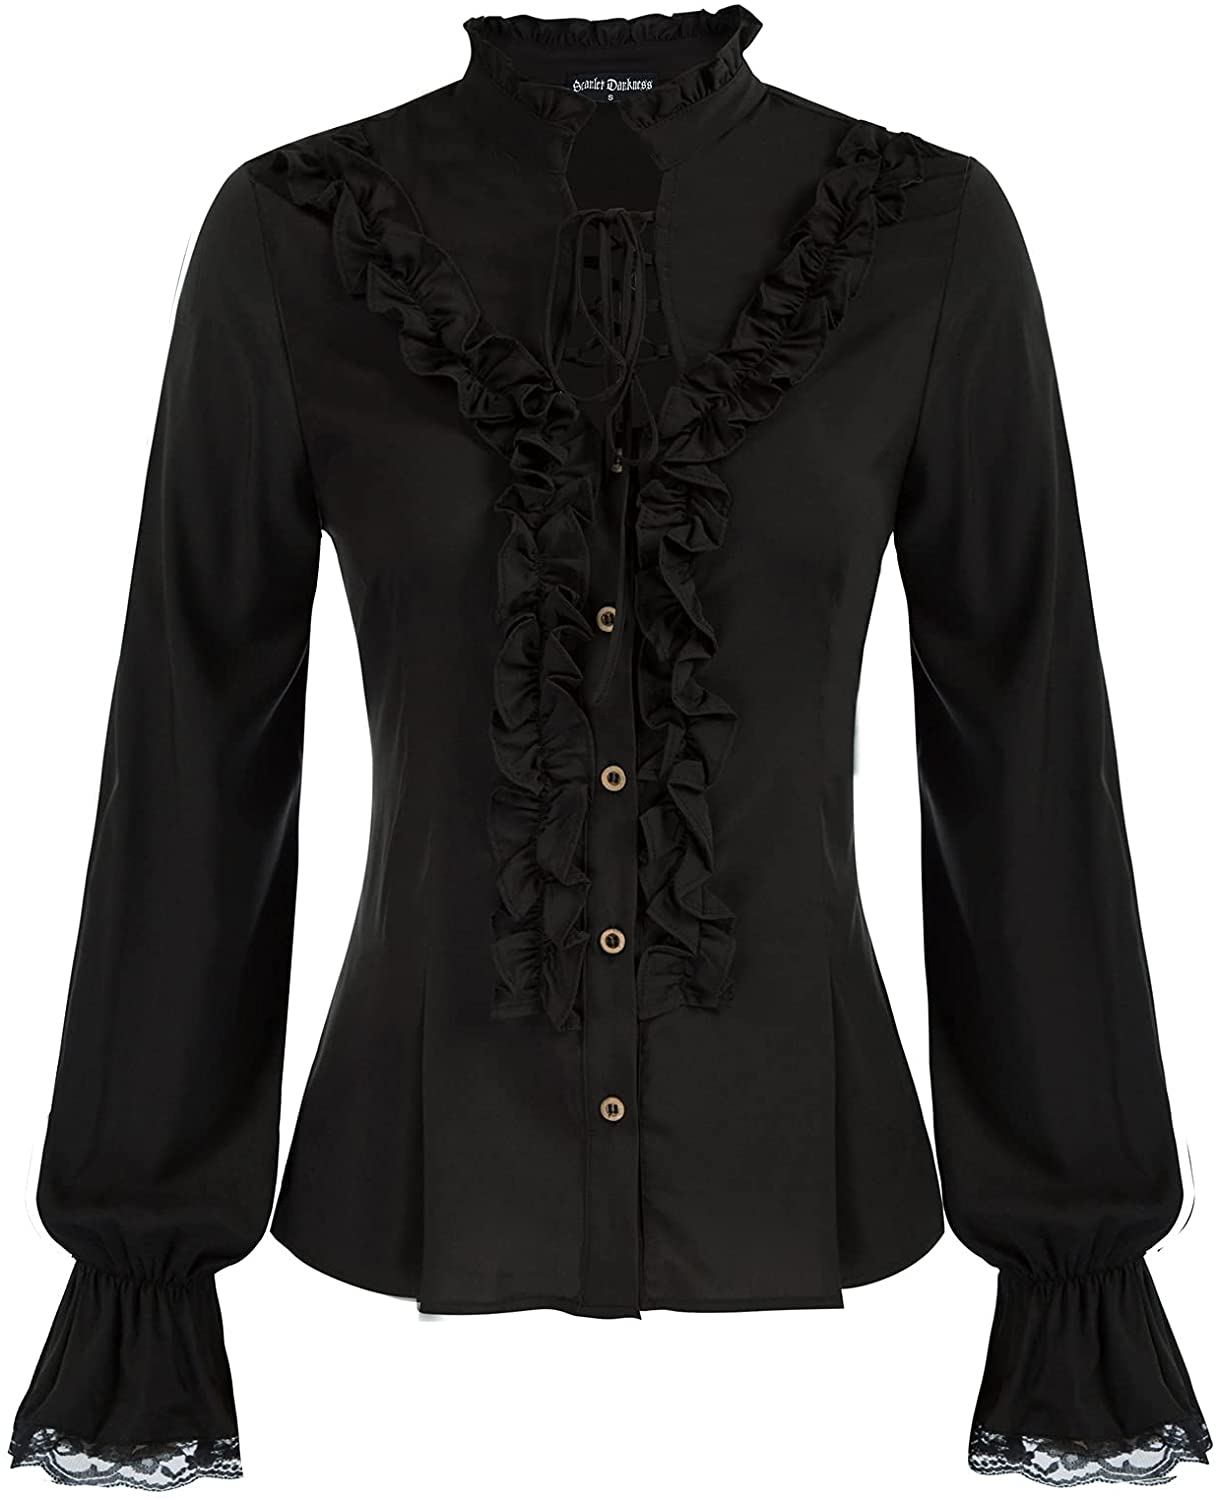 Scarlet Darkness Women Victorian Stand-up Collar Tops Ruffled Long Sleeves Shirt